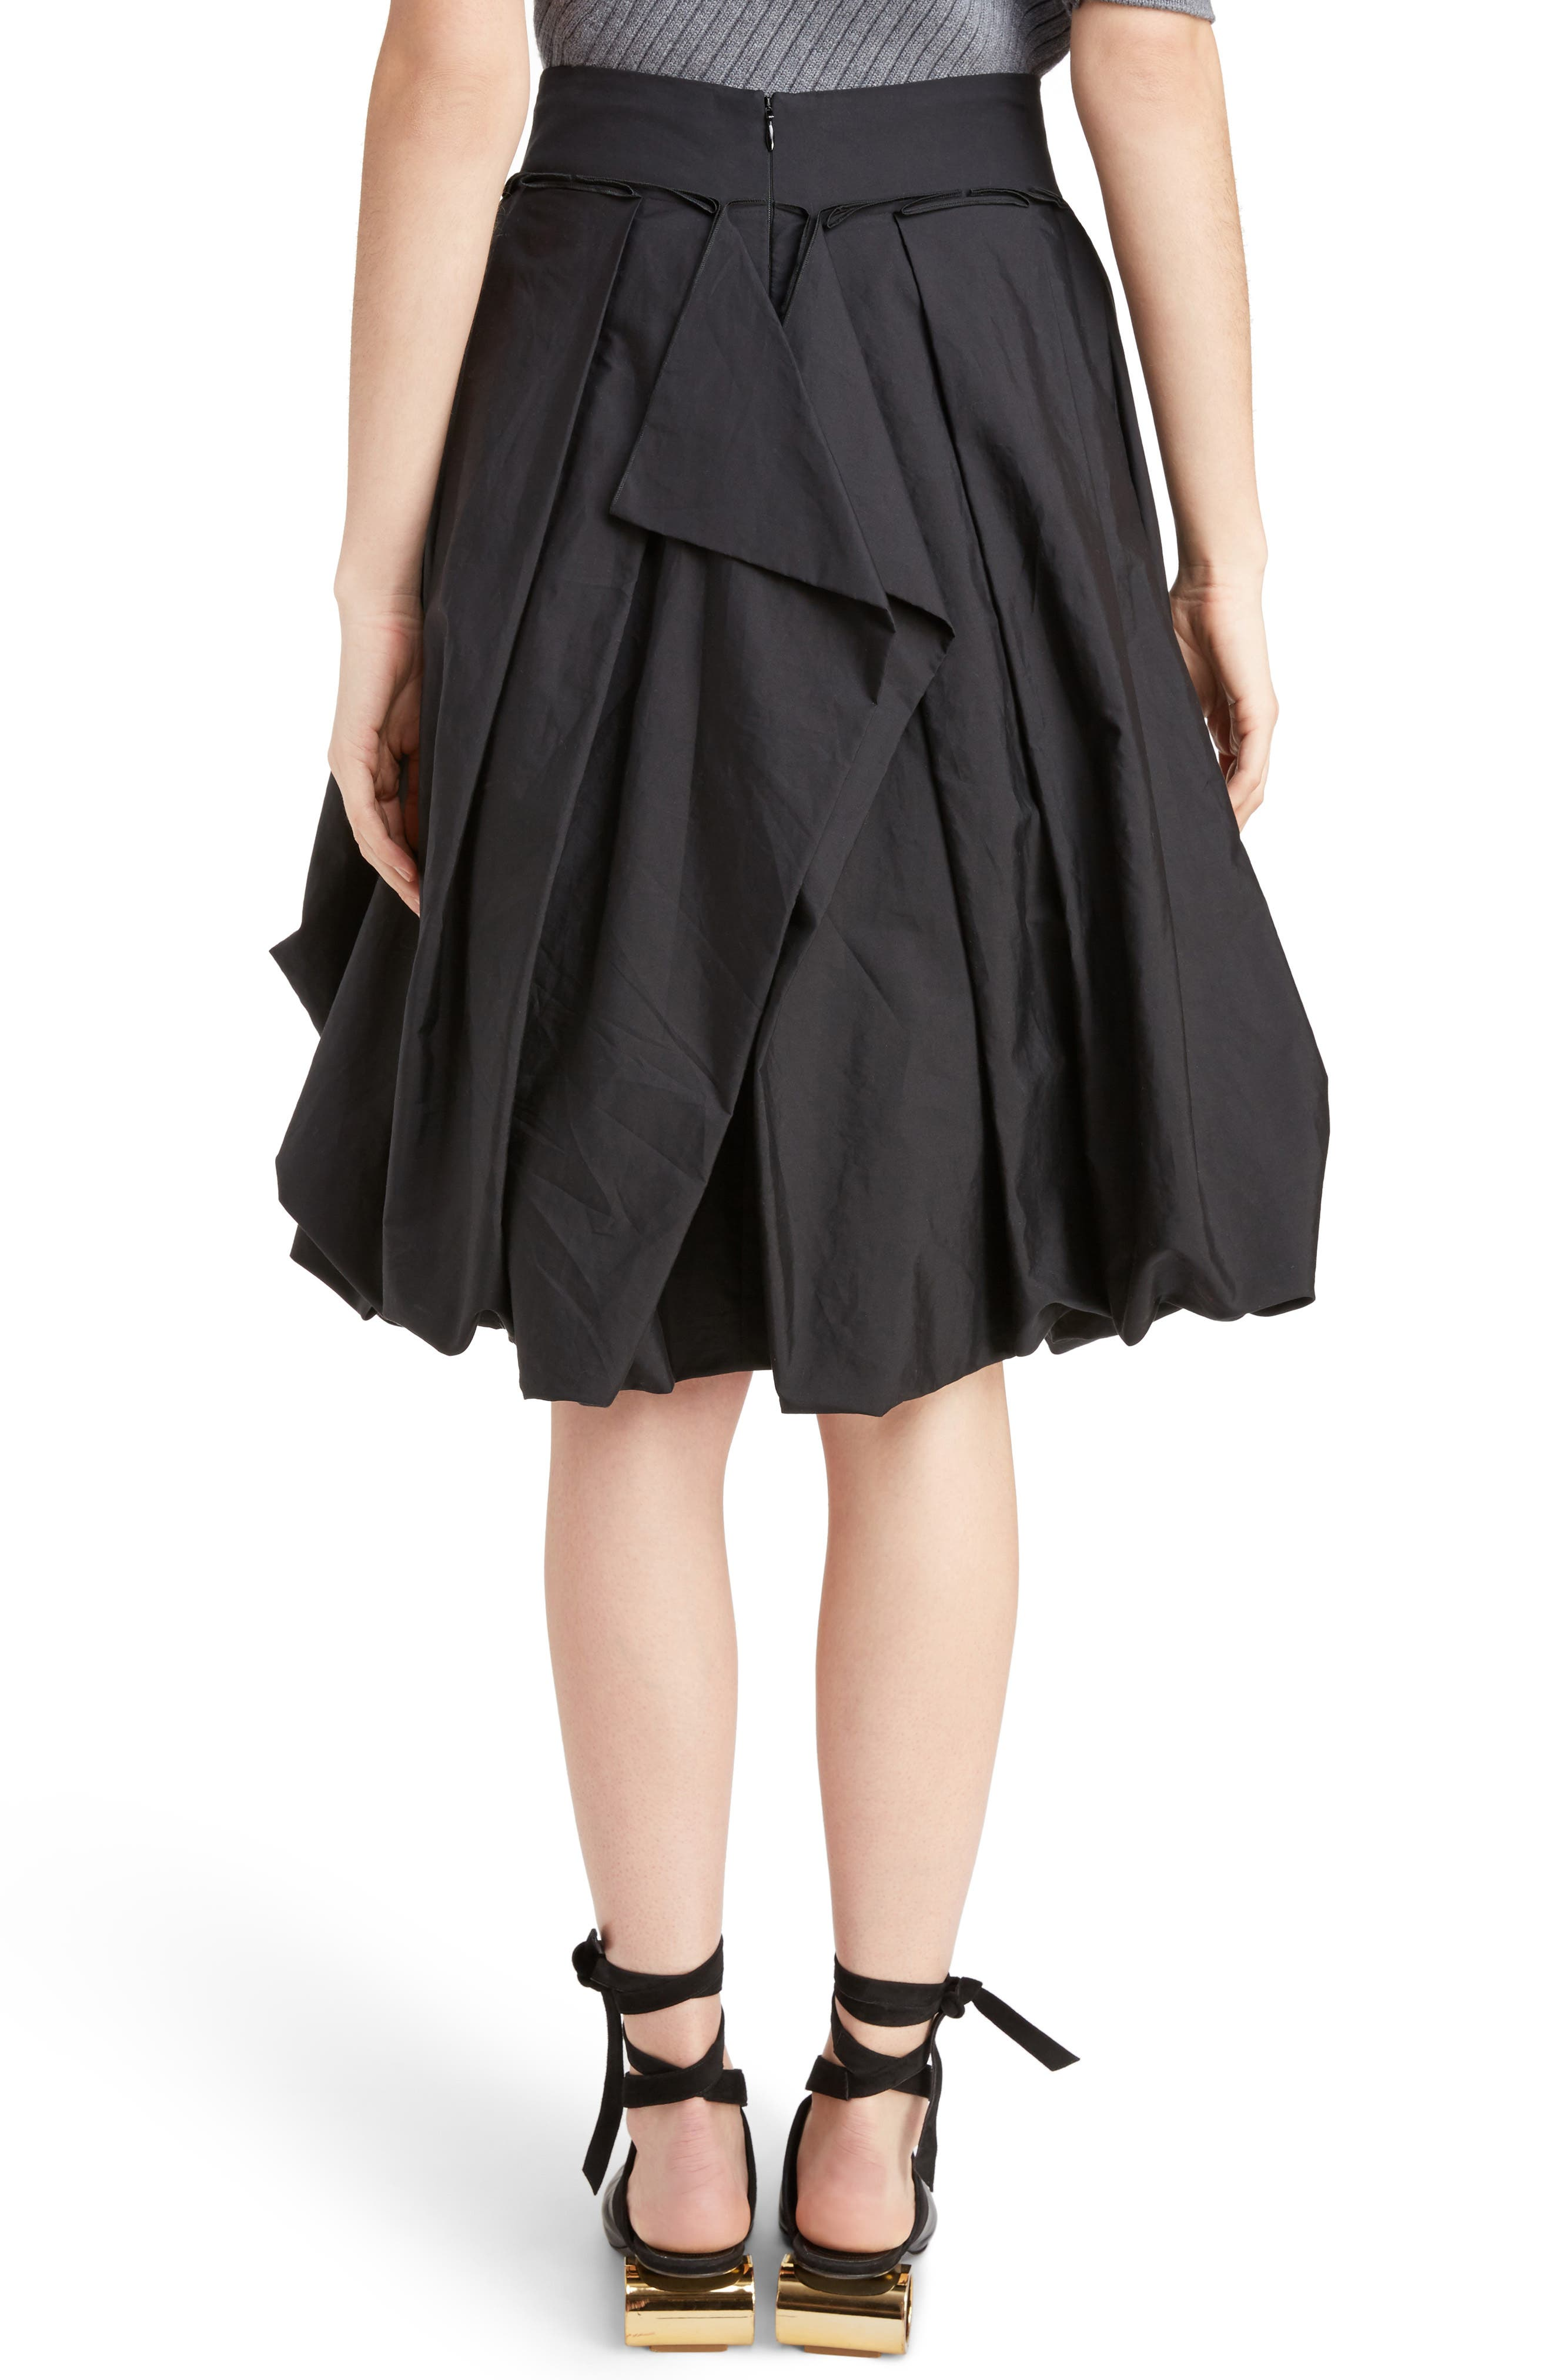 J.W.ANDERSON Drape Pockets Pleated Skirt,                             Alternate thumbnail 2, color,                             001